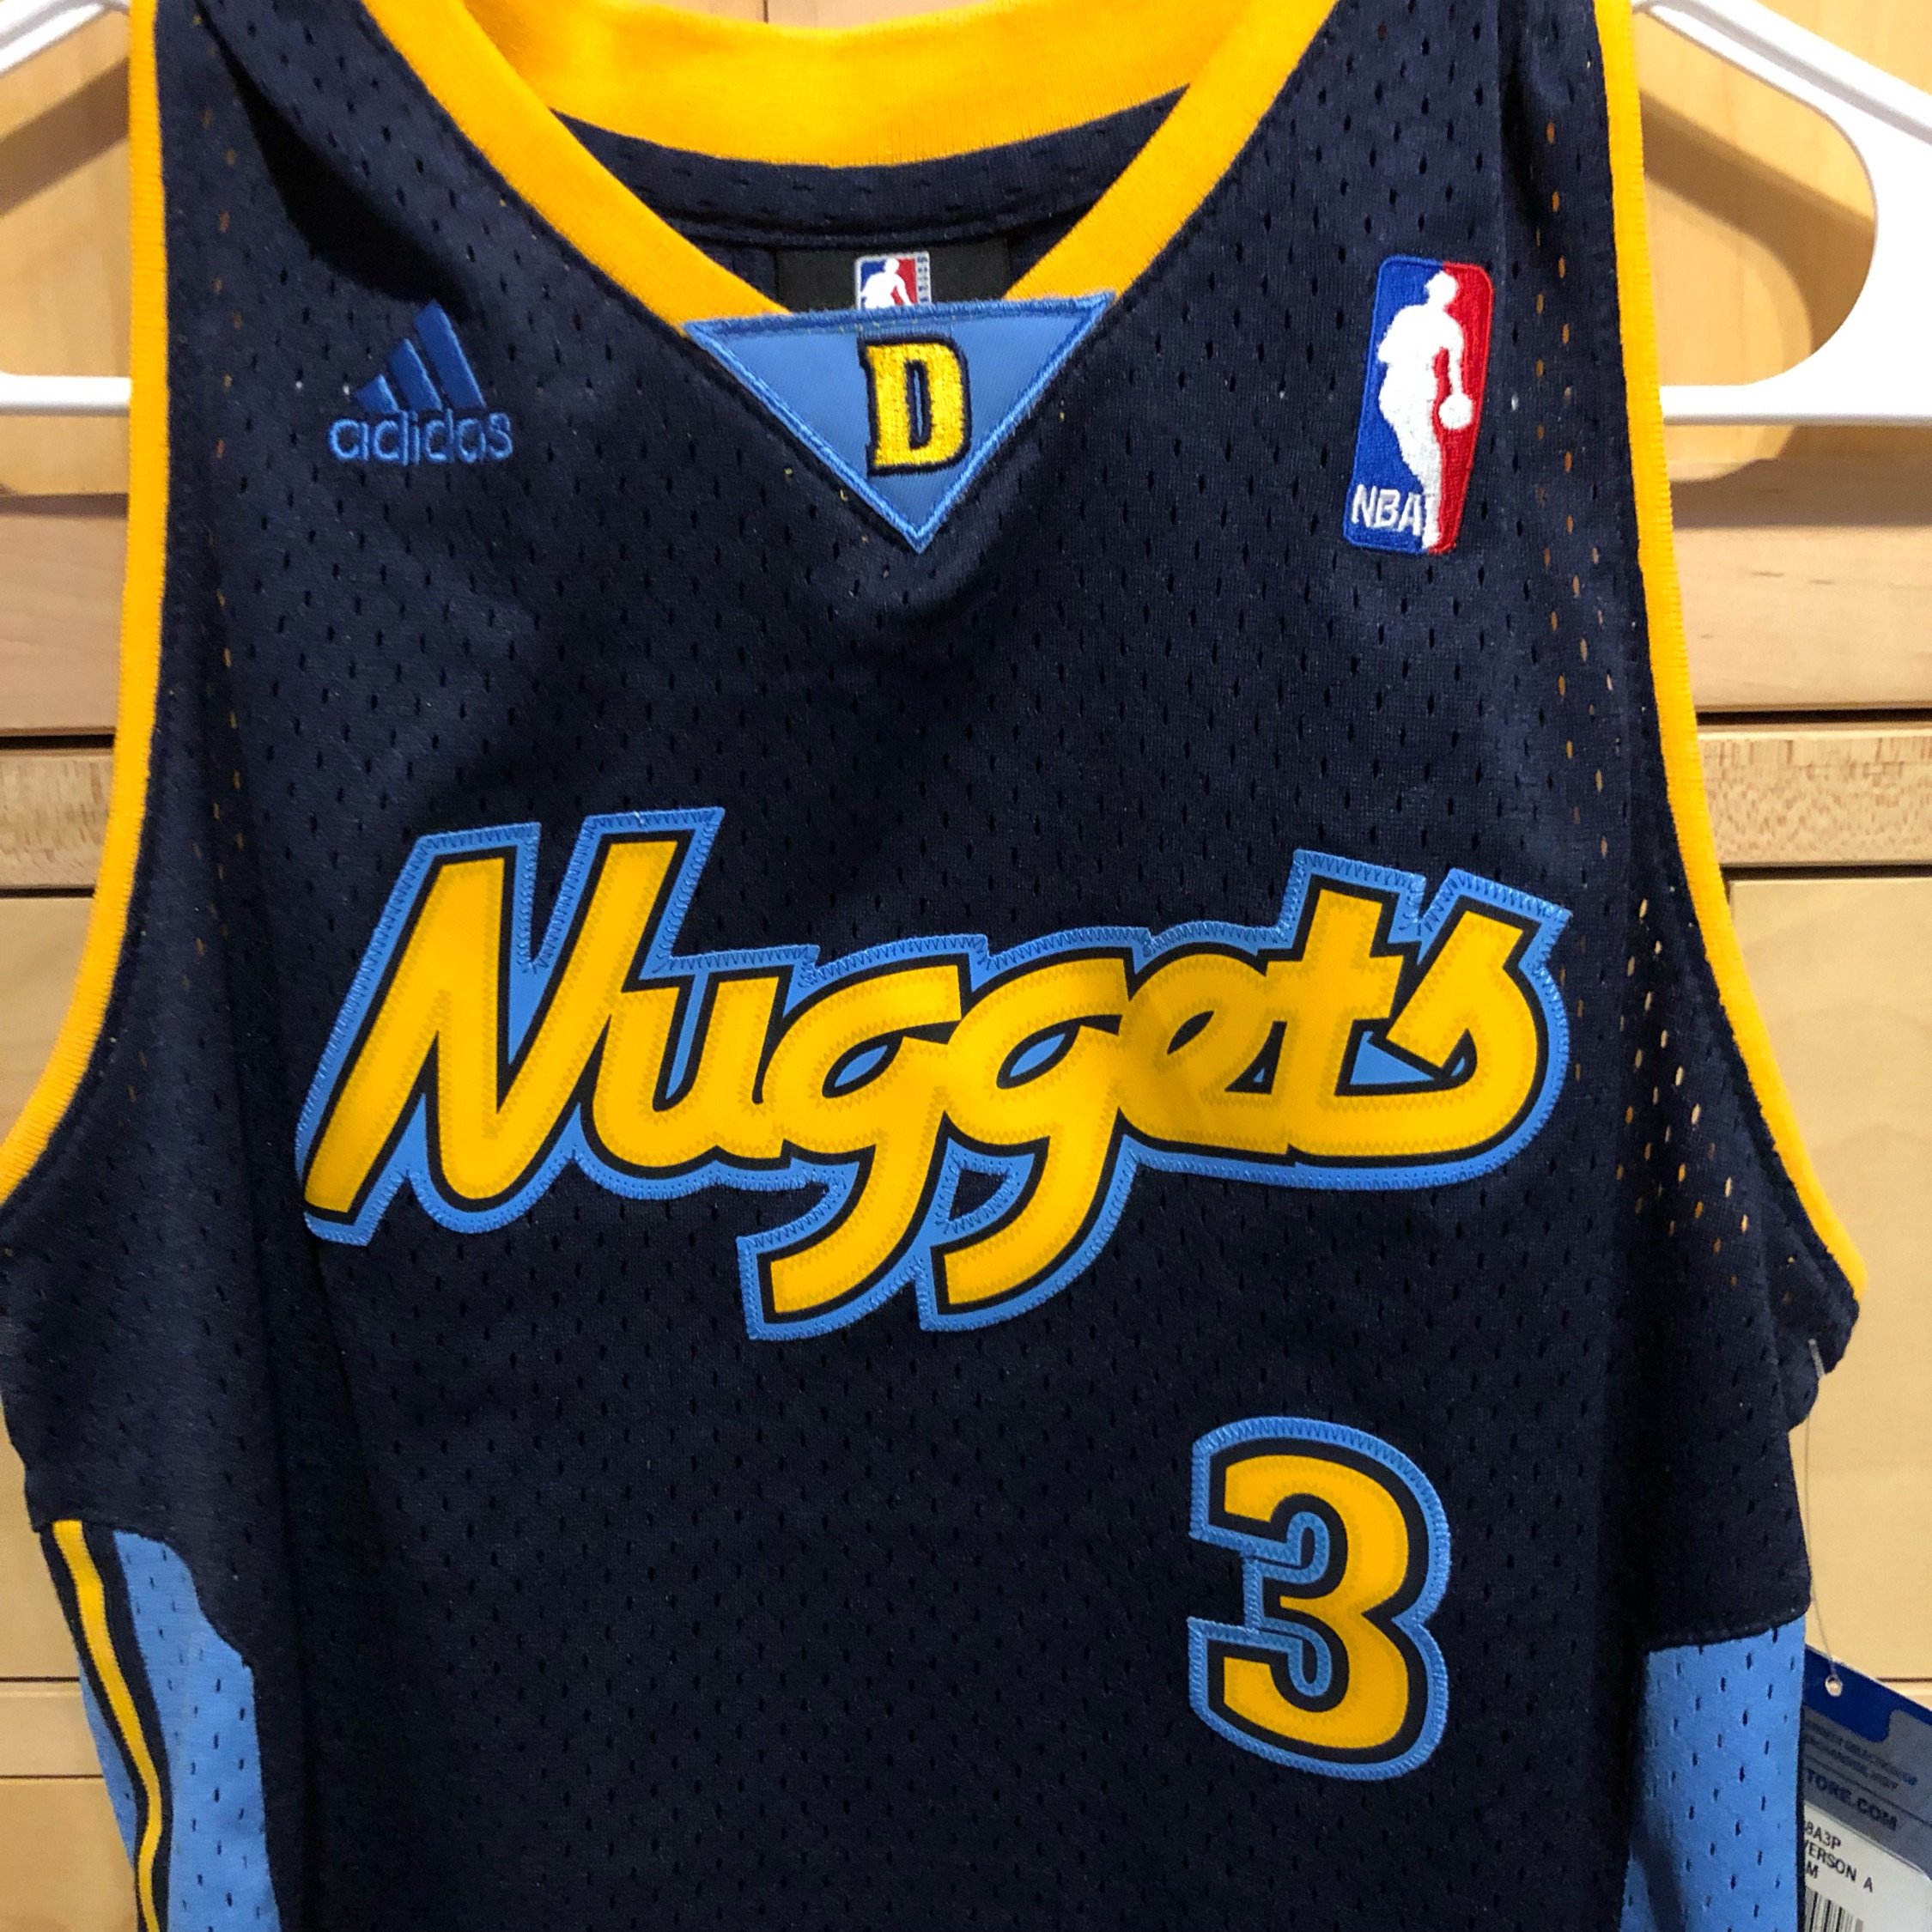 huge selection of 1c15a d7840 Adidas Denver Nuggets Allen Iverson Jersey Youth